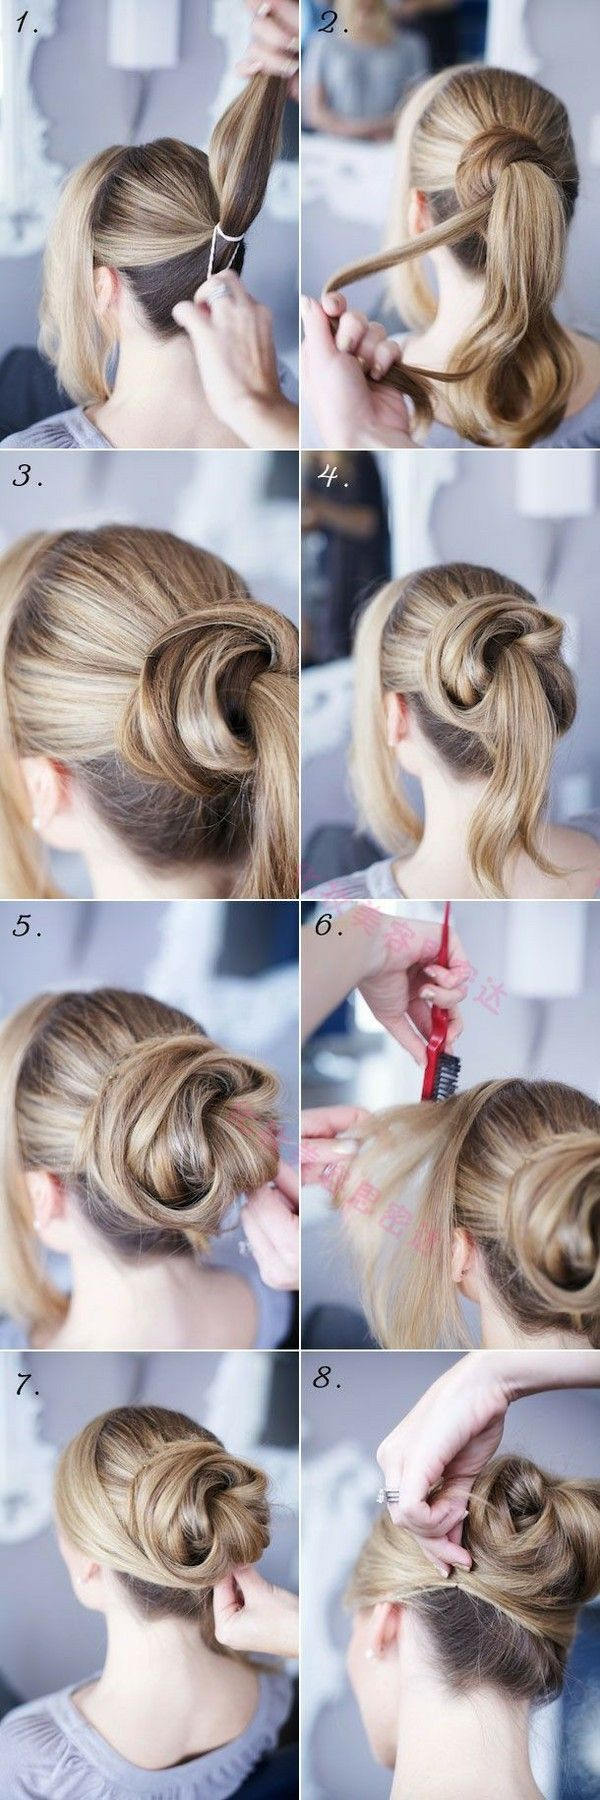 Easy bun updo peinados pinterest easy bun bun updo and updo